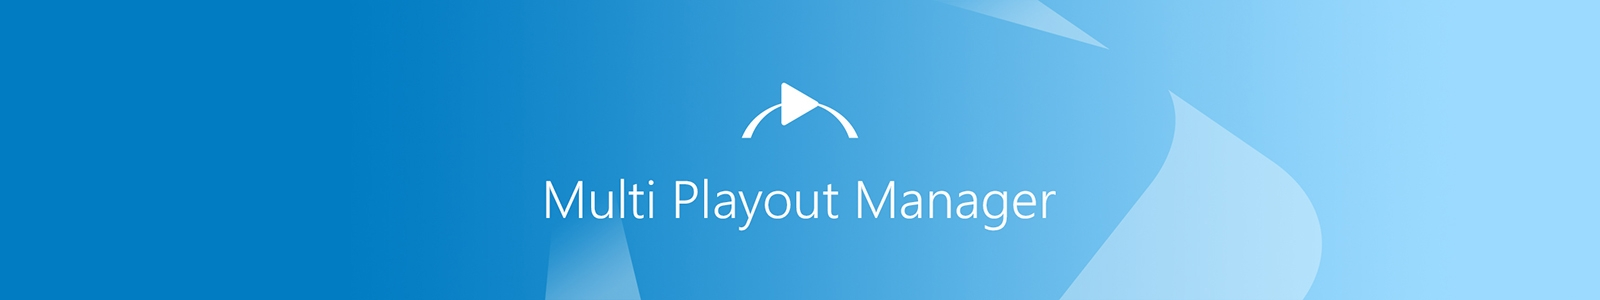 Multi Playout Manager logo